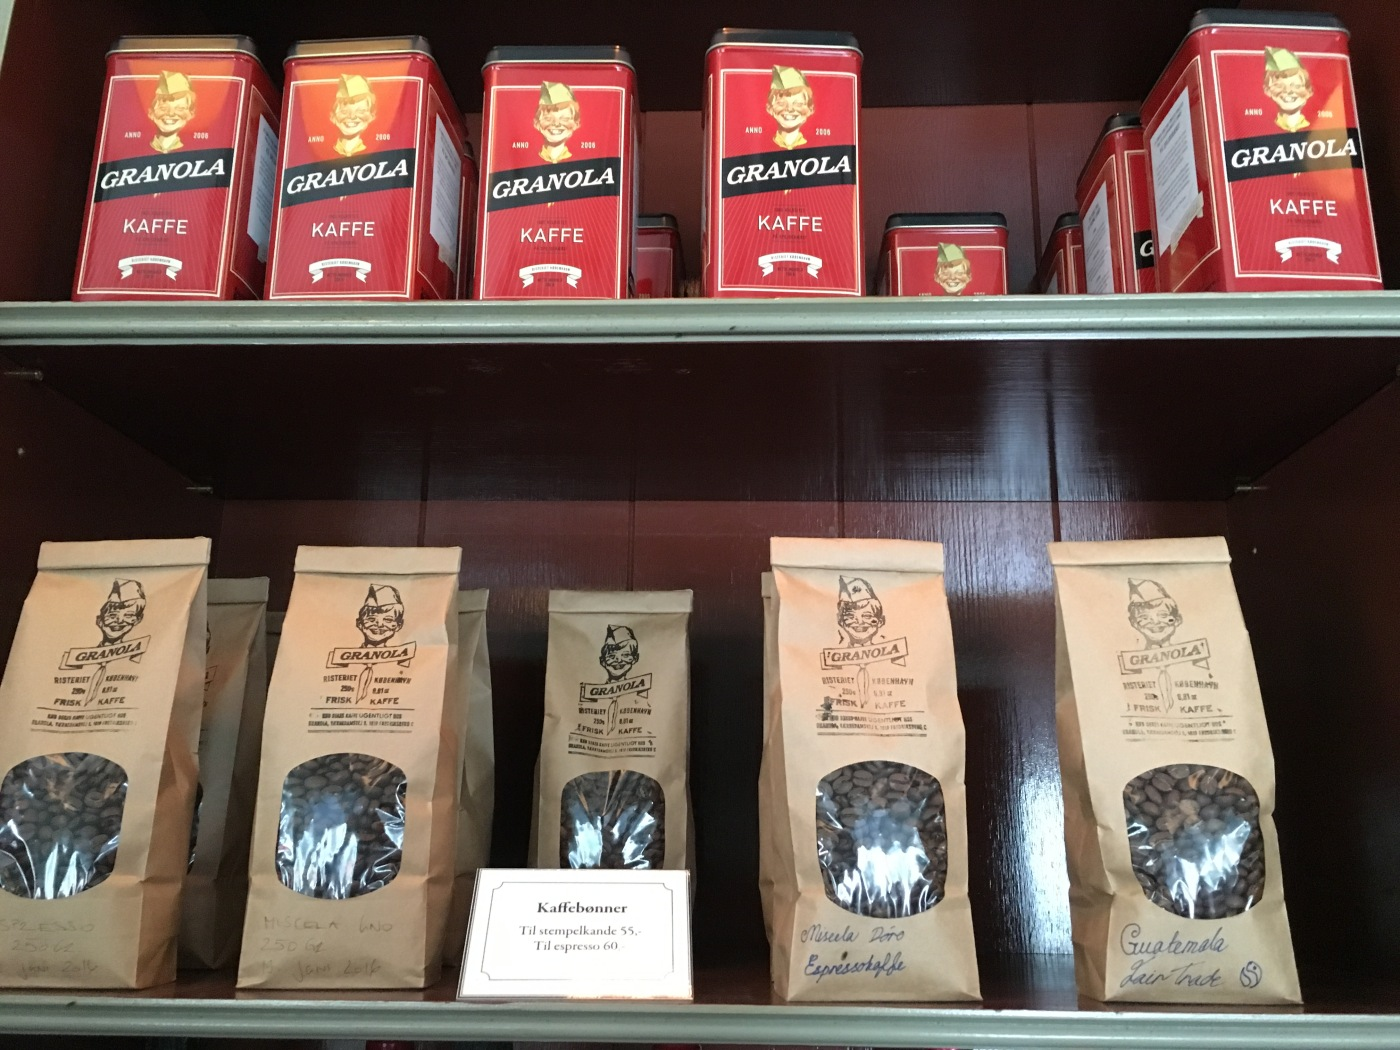 50's Style Tins and Packages of Coffee Beans at Granola in Copenhagen, Denmark